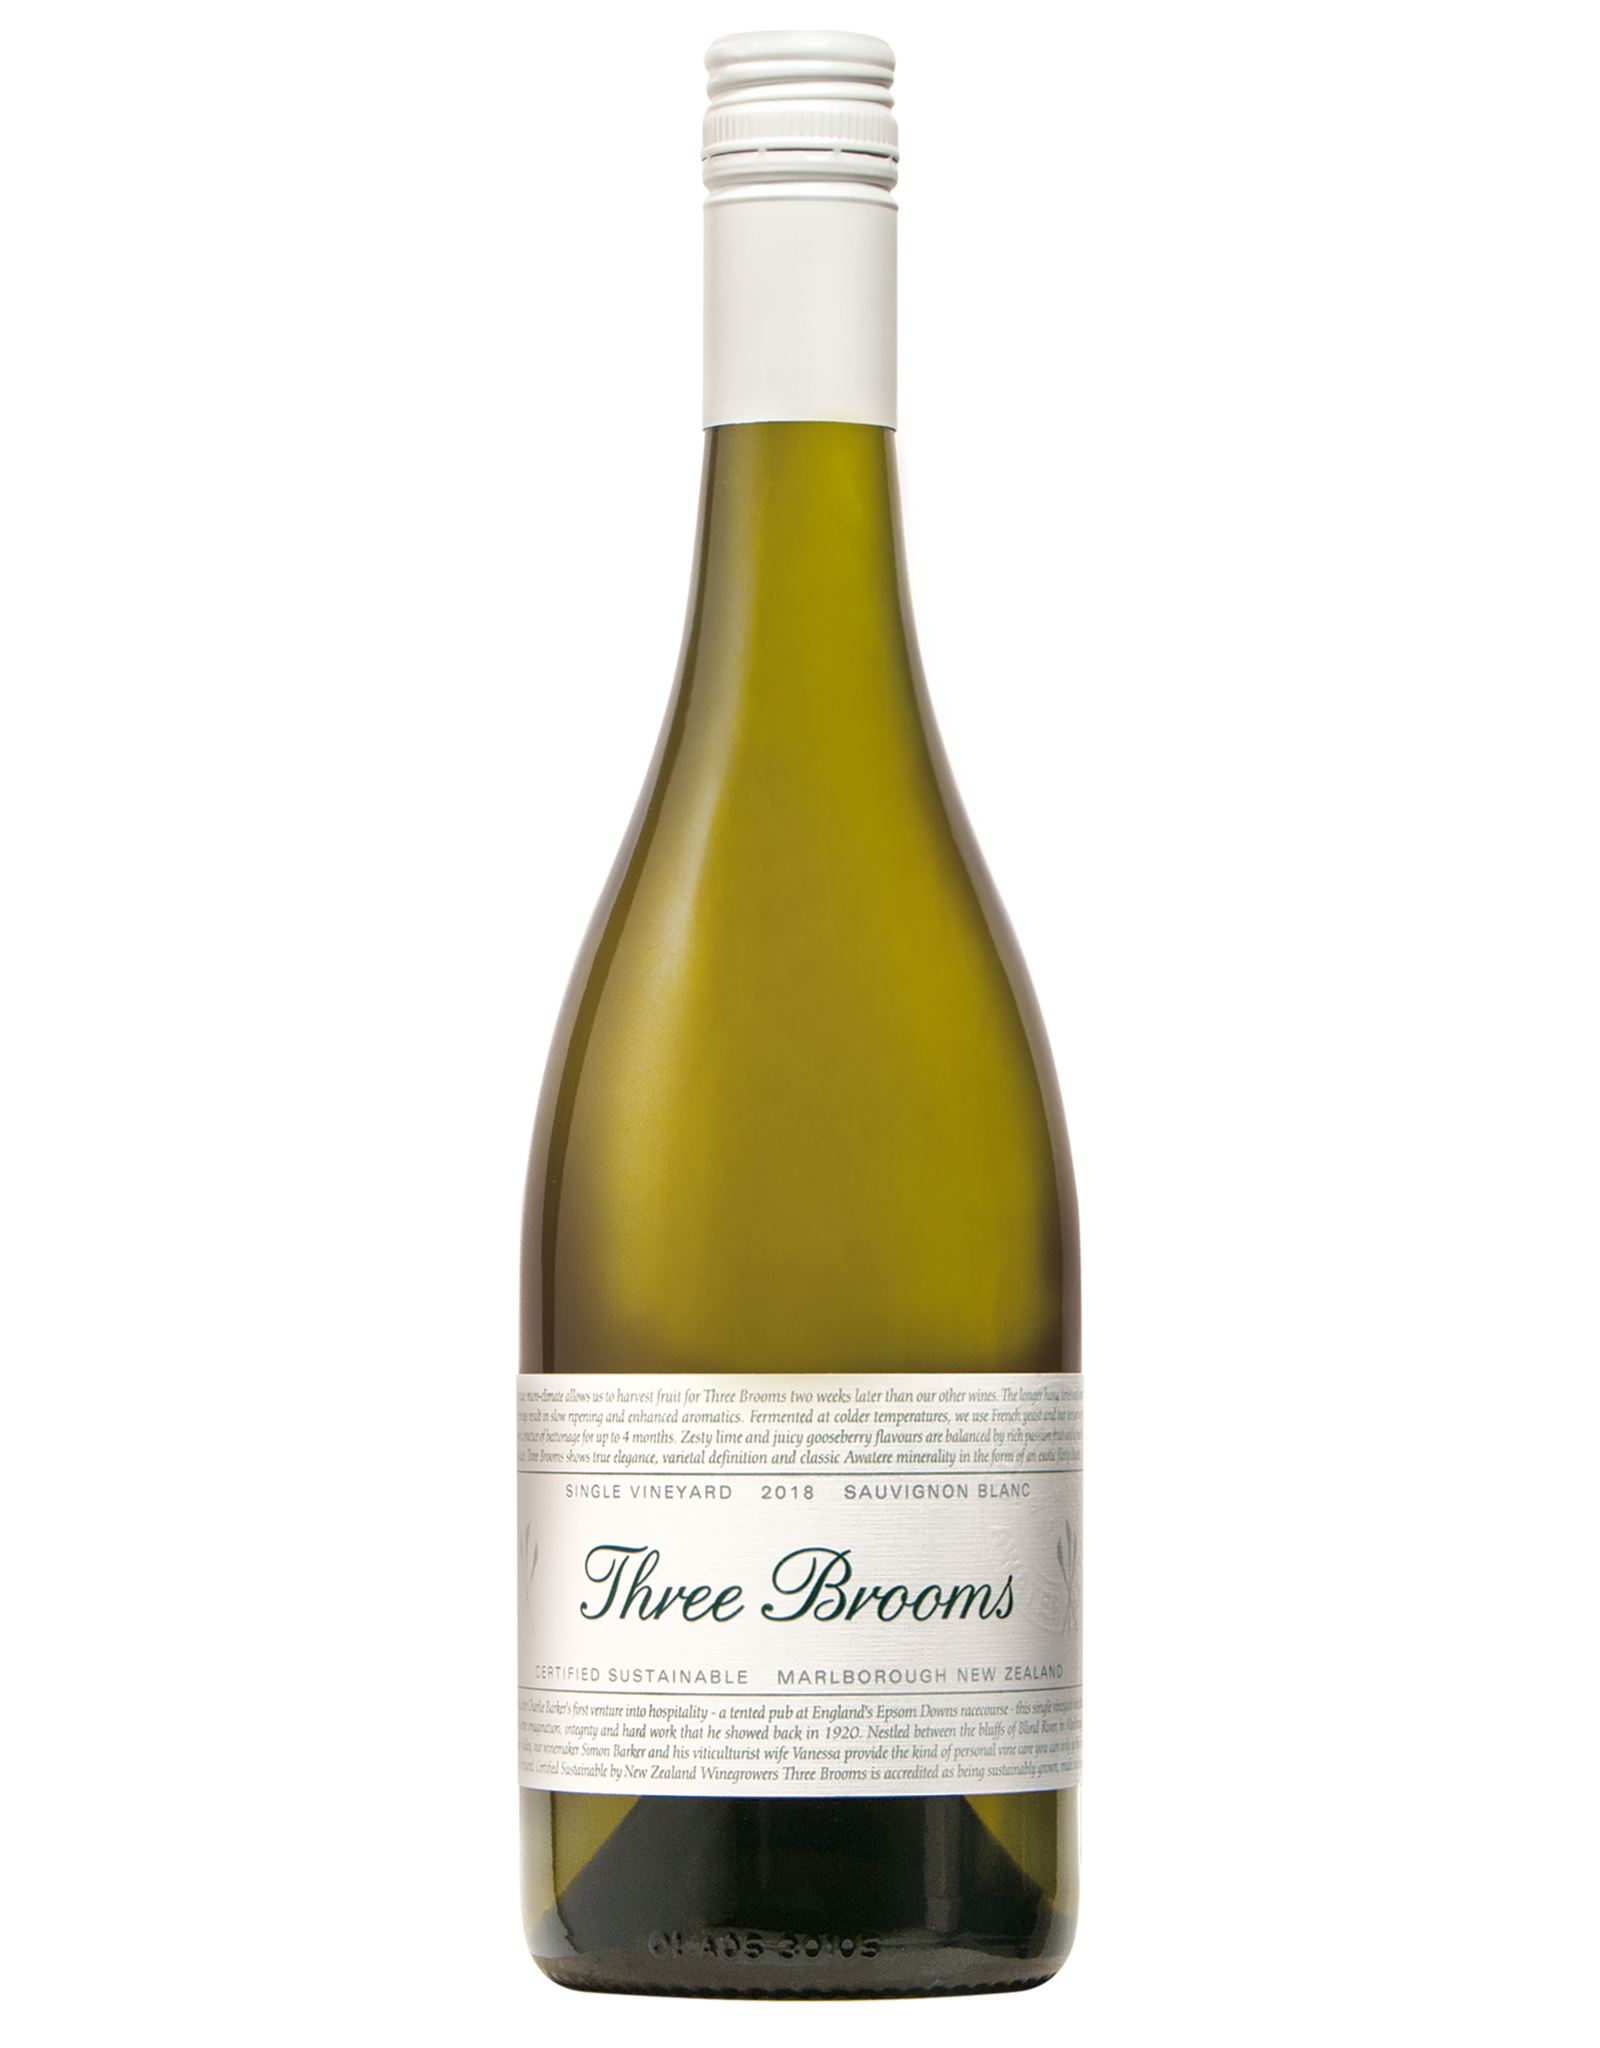 Three Brooms Sauvignon Blanc